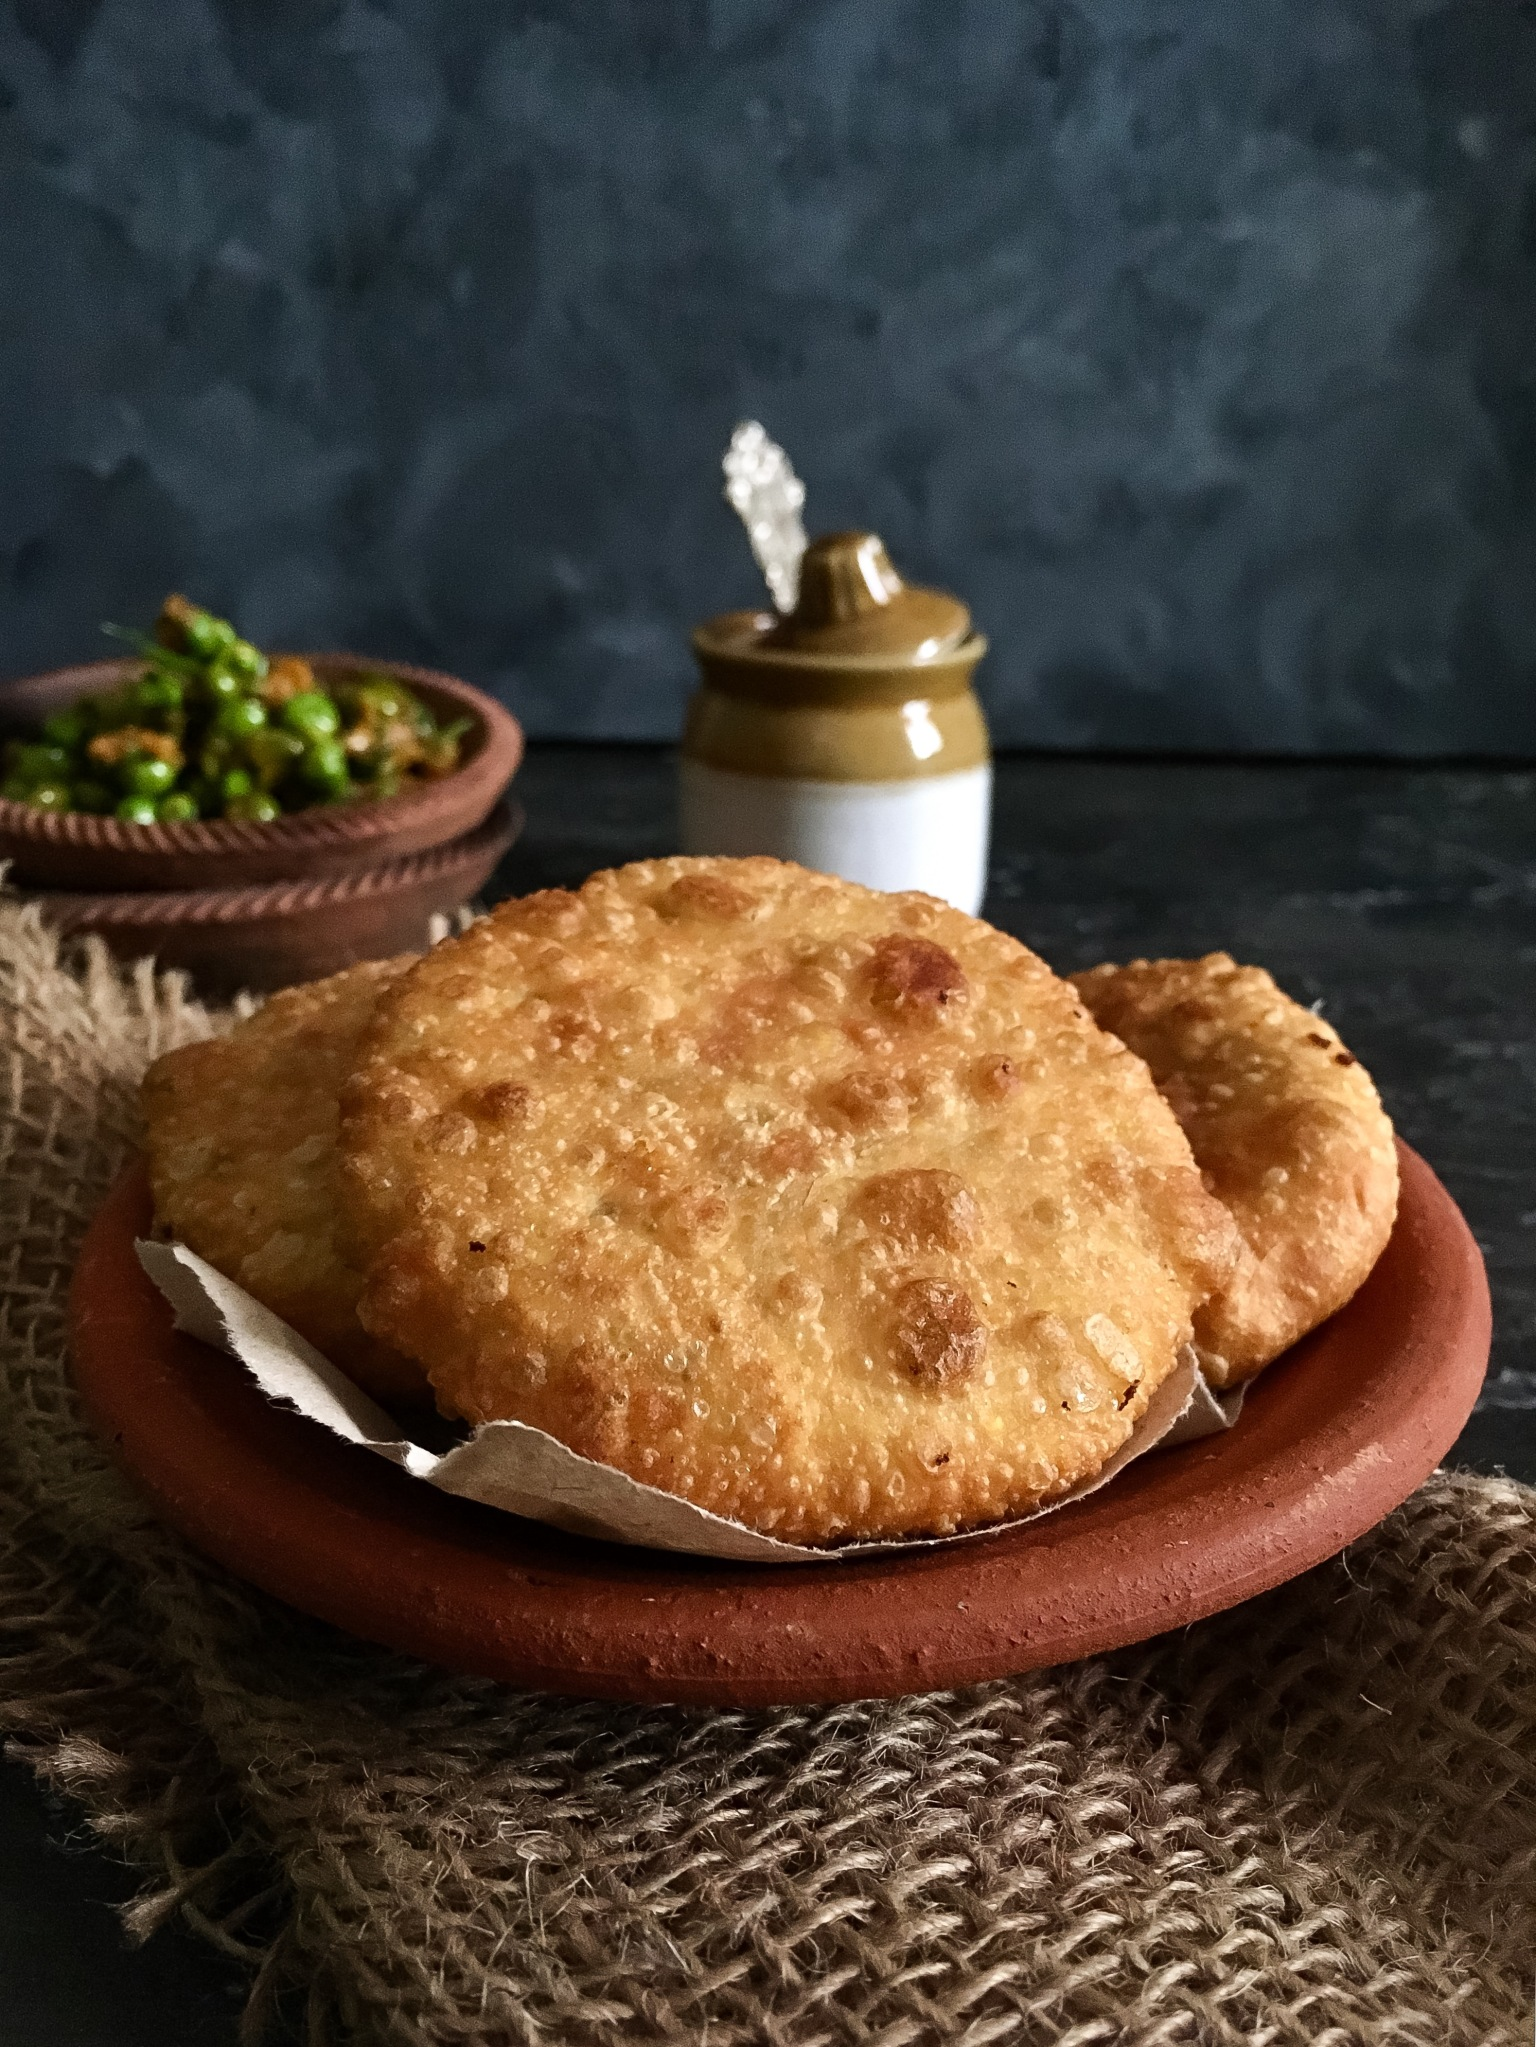 Mattar ki kachori recipe Mutter ki kachori recipe How to make green peas kachori Polkapuffs recipes Shreyatiwari recipes